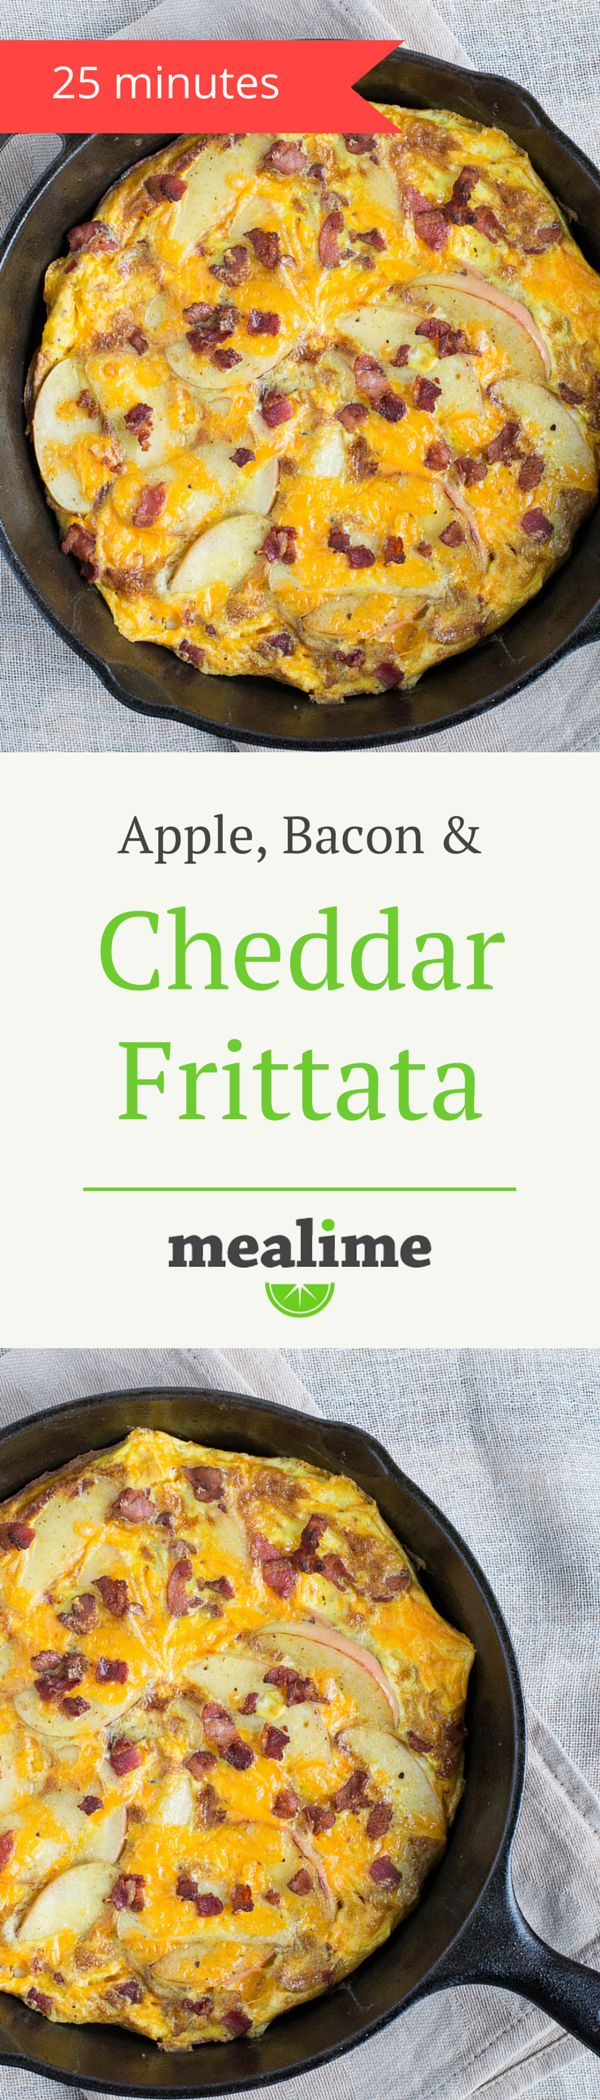 Bacon Frittata with Apple & Cheddar Cheese via @mealime  - a healthy, easy frittata recipe for one or two. Flexitarian, keto, low carb, paleo/primal, fish free, gluten free, peanut free, shellfish free, and tree nut free. #mealplanning